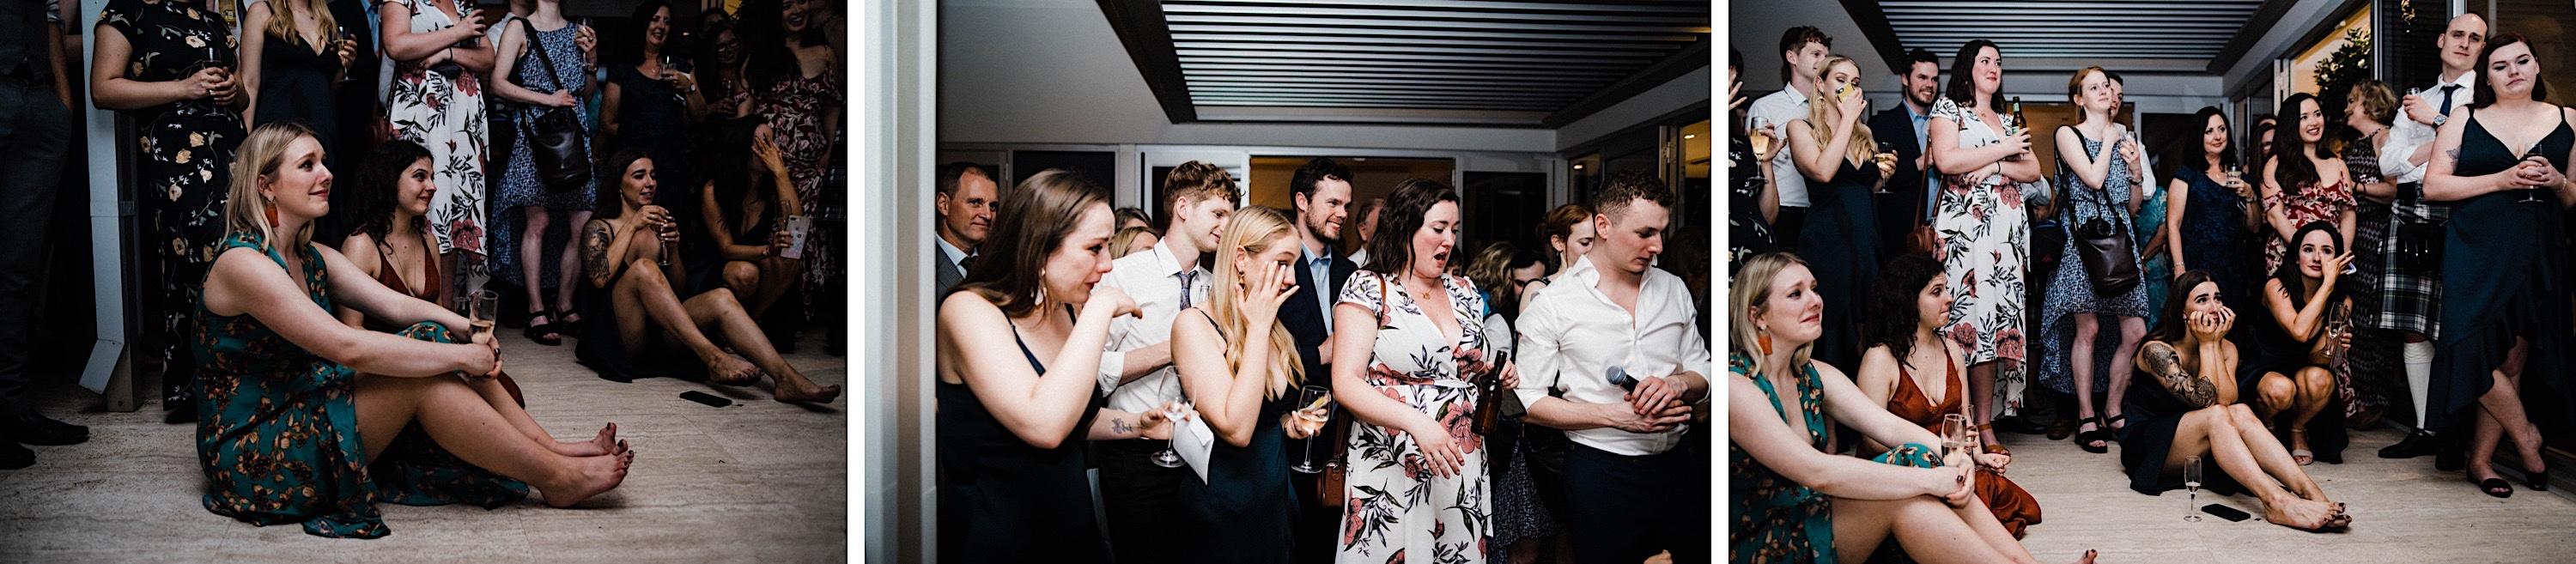 Candid wedding photography of guests laughing and crying during speeches at a Backyard Wedding in Nedlands.